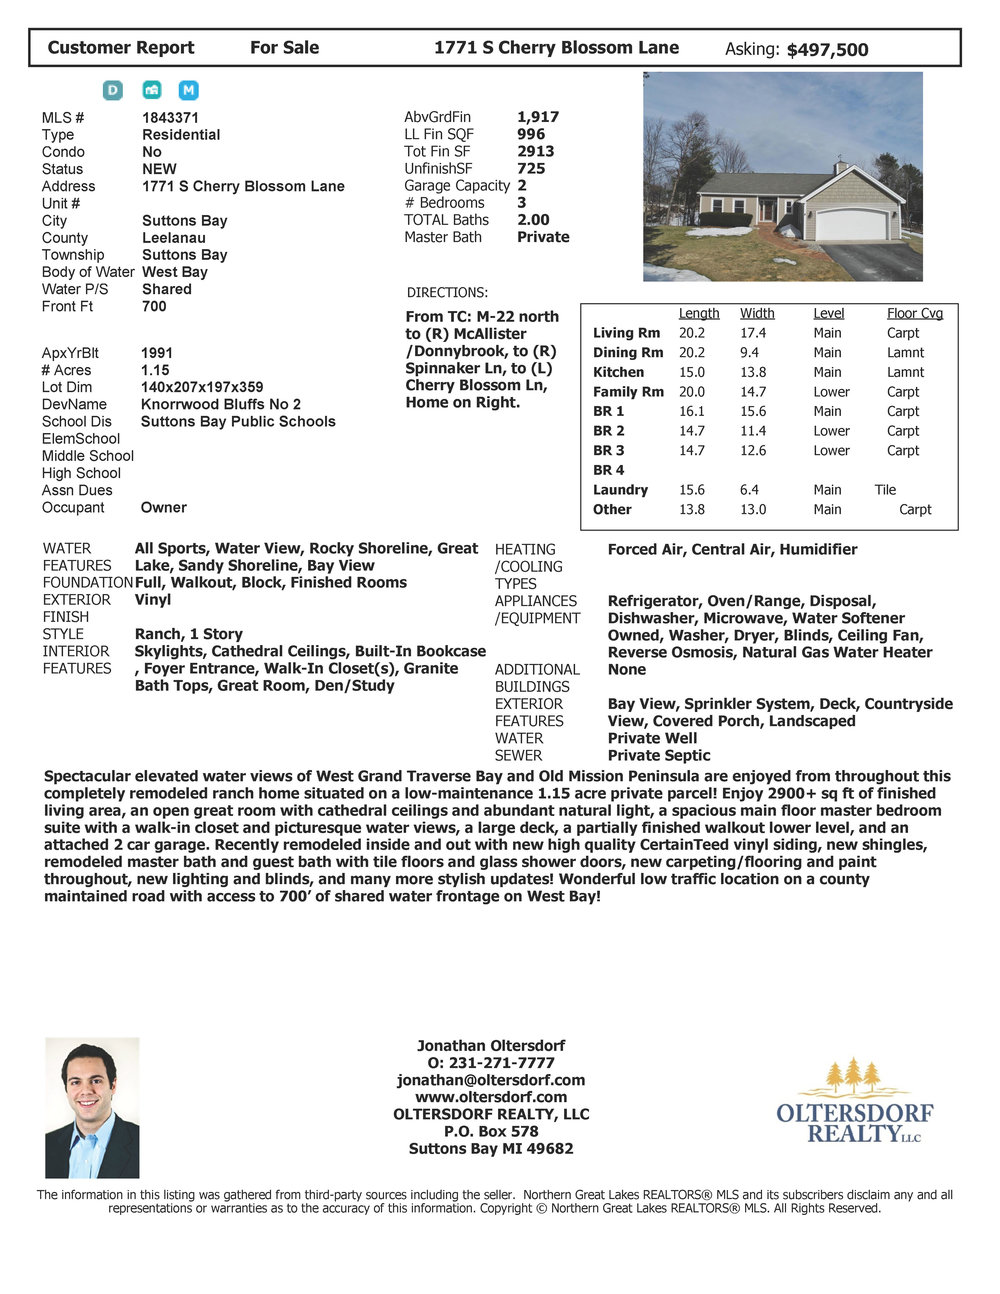 1771 S Cherry Blossom Lane, Suttons Bay Marketing Packet - Real Estate for sale by oltersdorf realty llc_Page_08.jpg